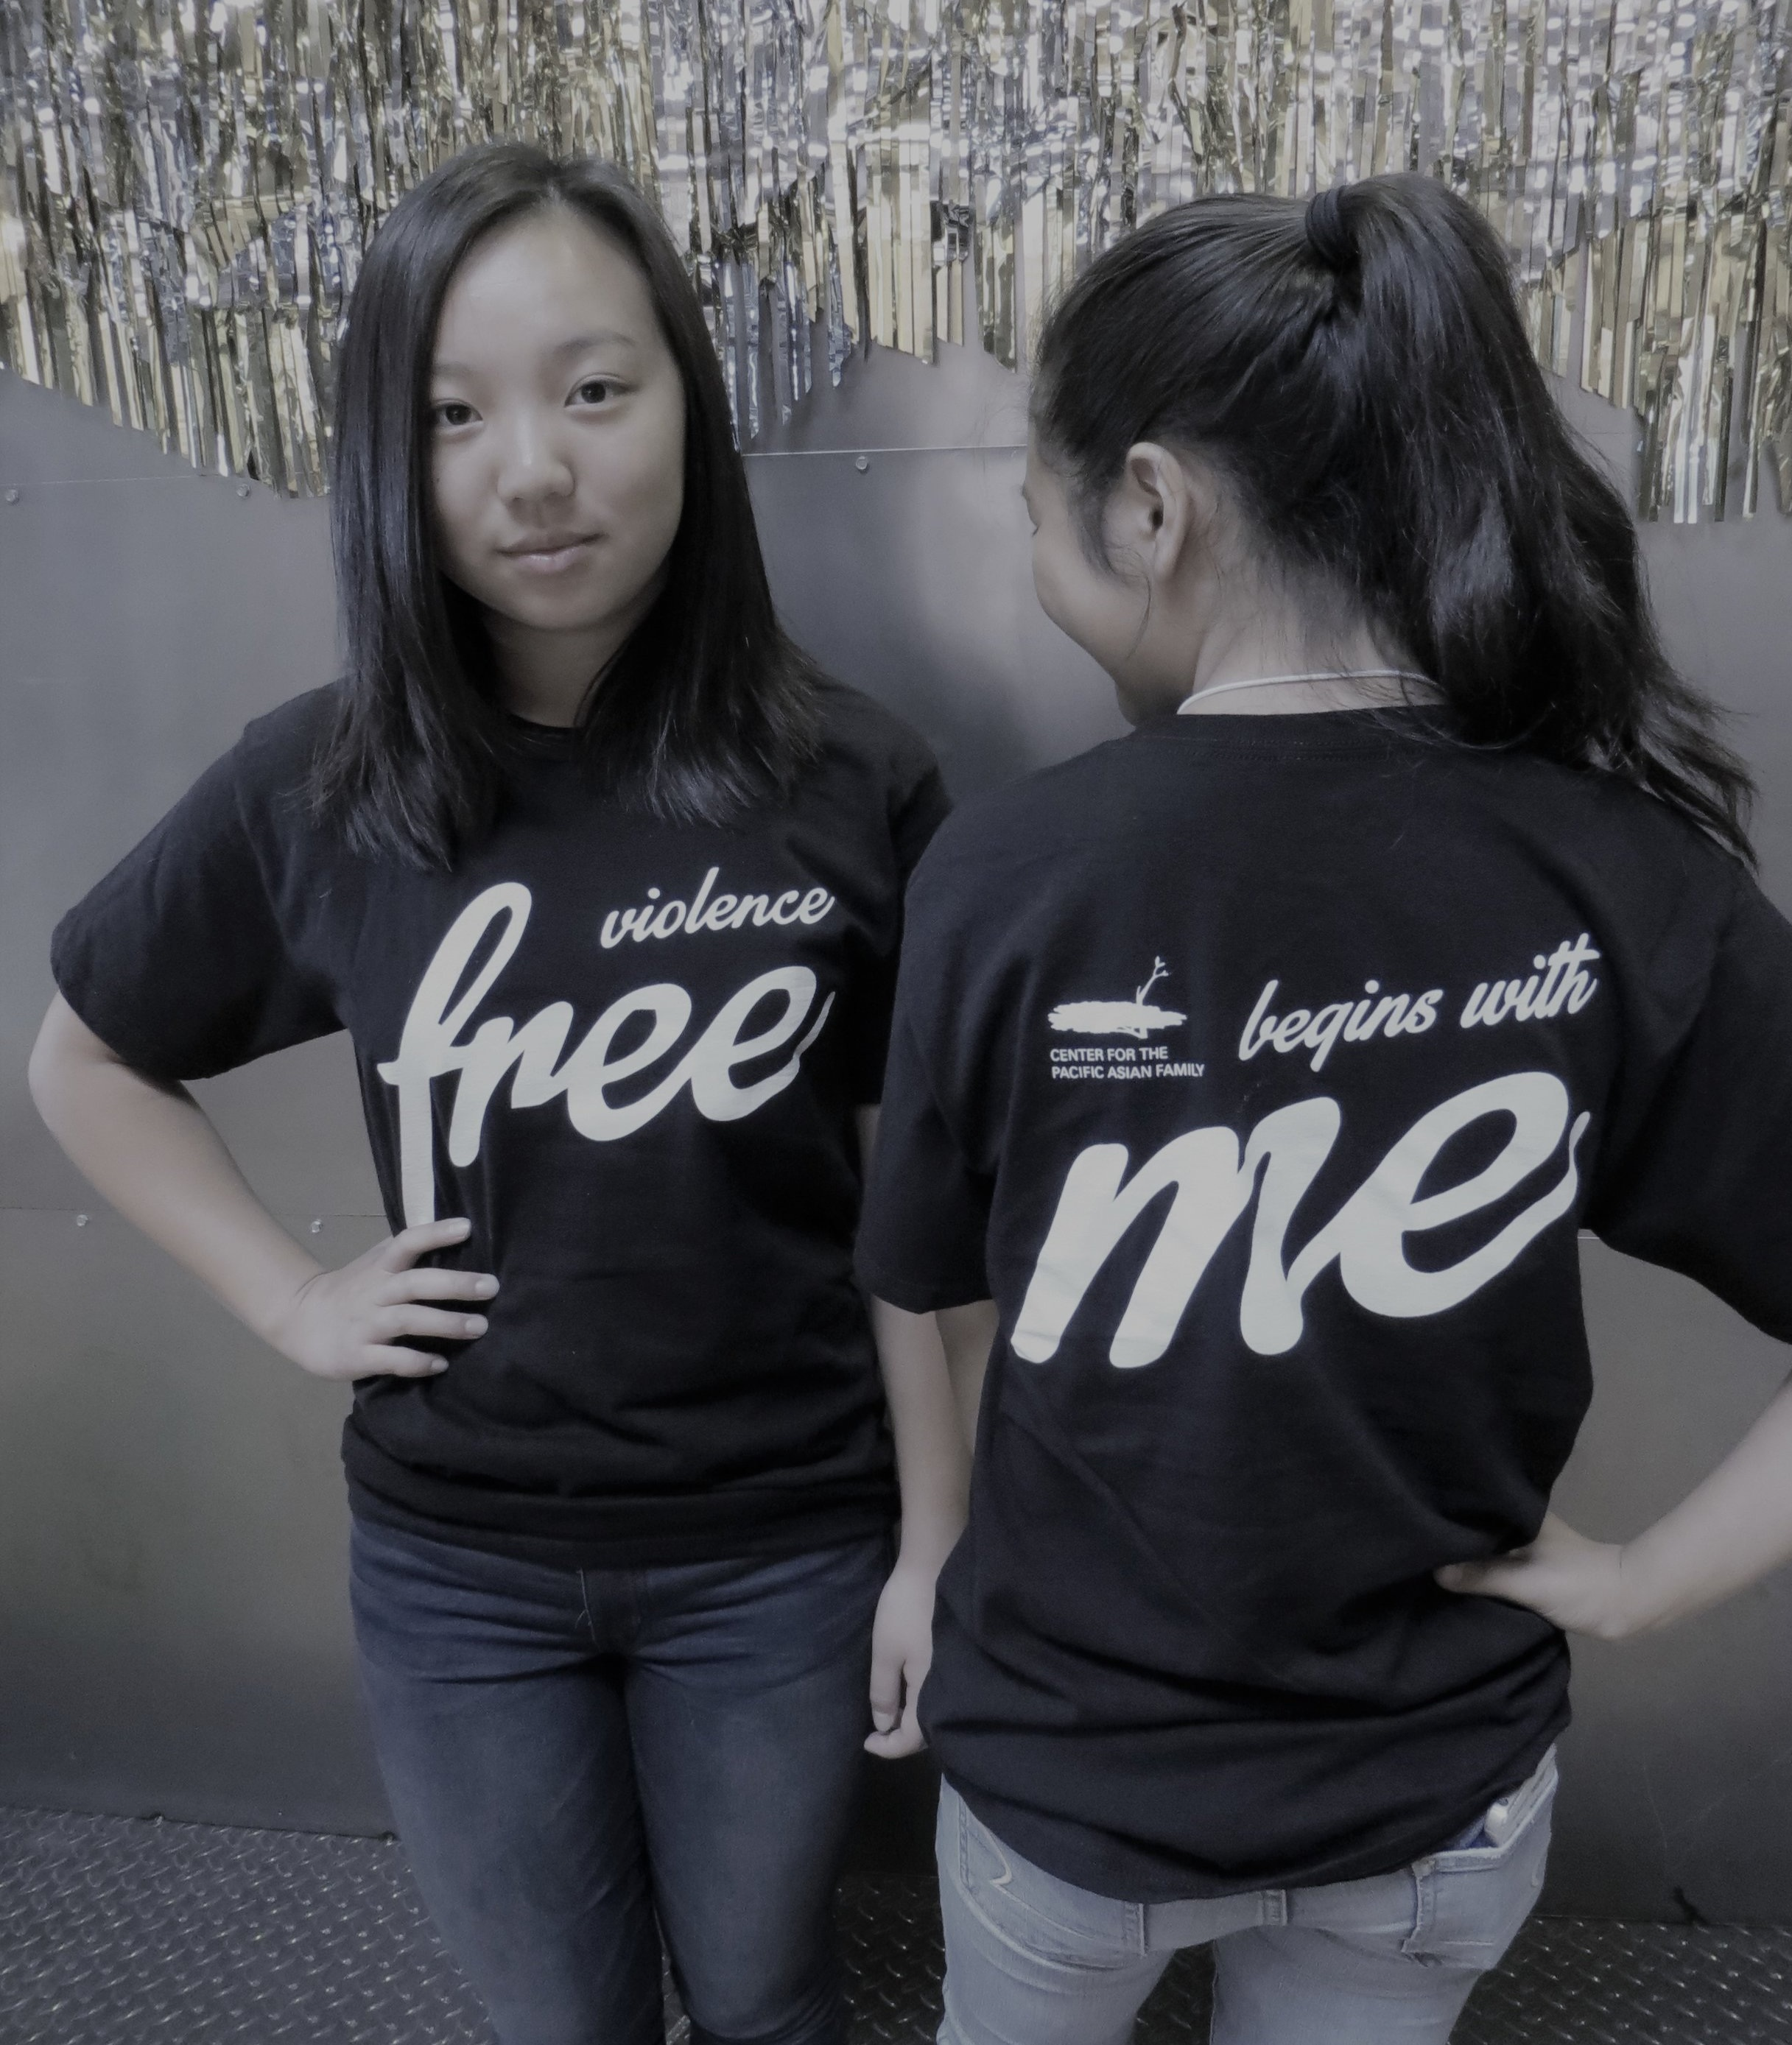 Our Mission - We are committed to meeting the specific cultural and language needs of Asian and Pacific Islander (API) women and their families. Our vision is of an API community that embraces healthy relationships and works in partnership with other communities to eradicate all forms of violence.LEARN MORE